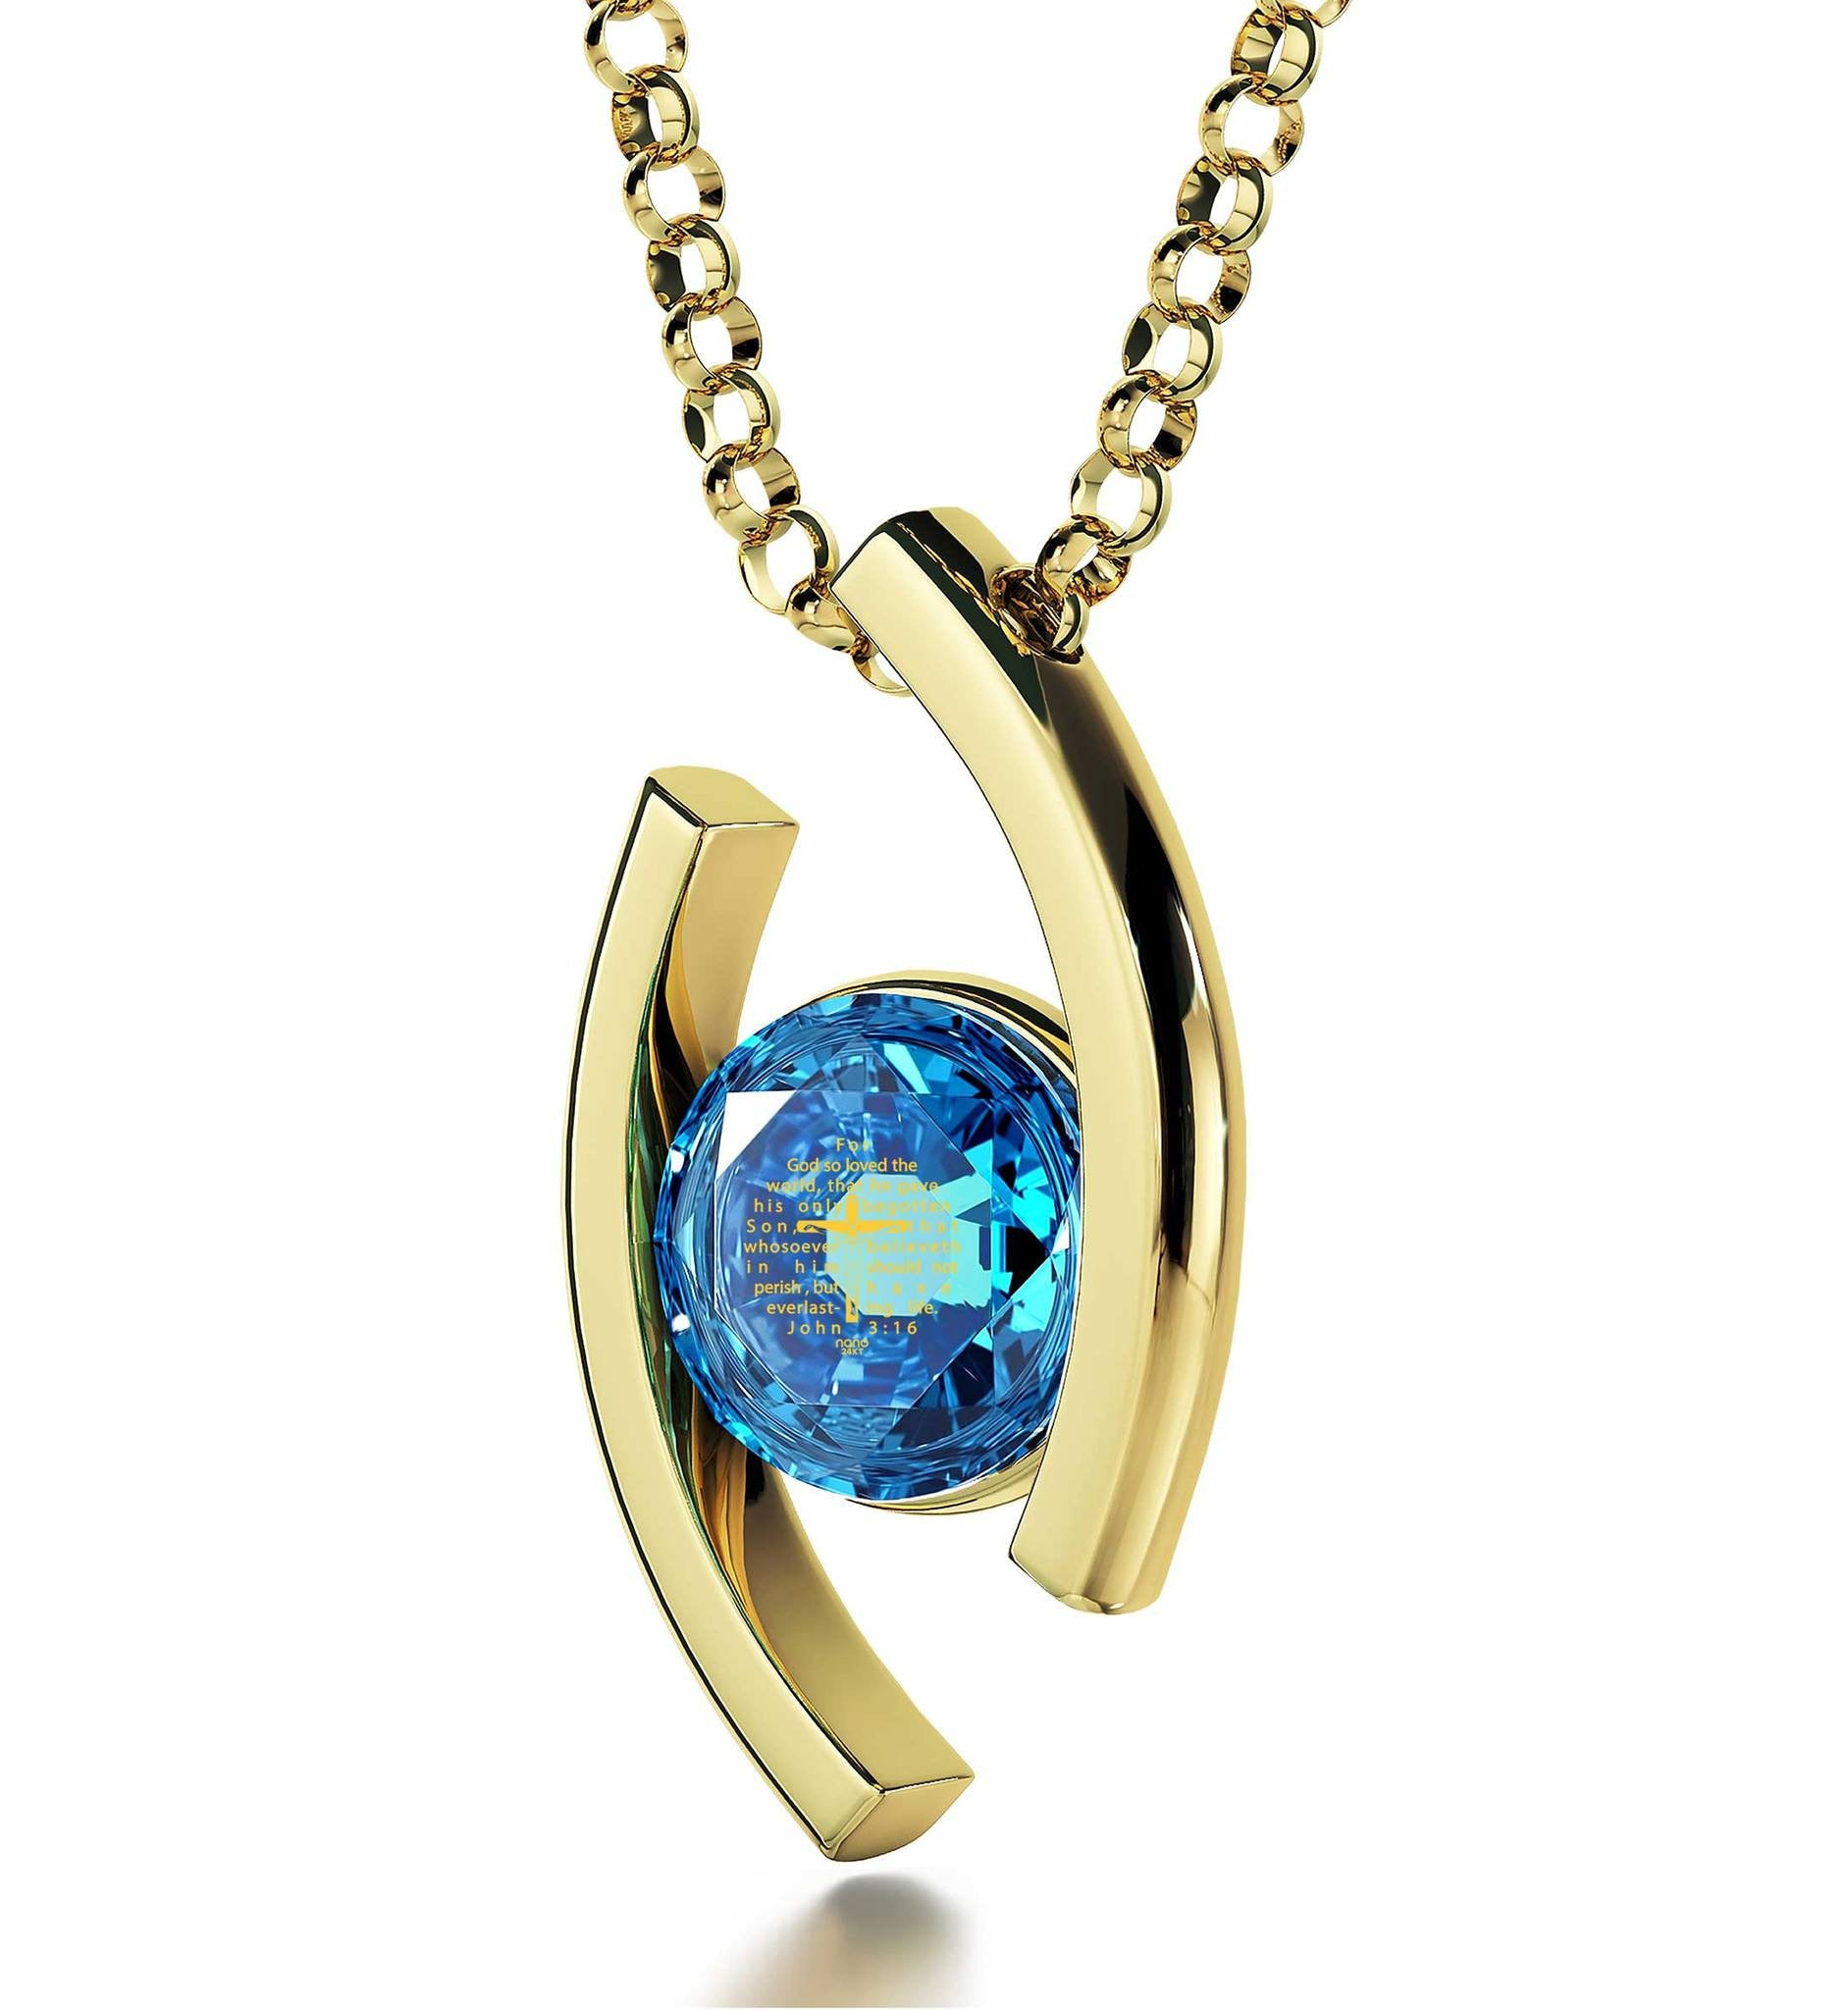 """John 3-16 Engravedin 24k, Mother'sDayGifts for Wife, GrandmaNecklace, AquamarineJewellery"""